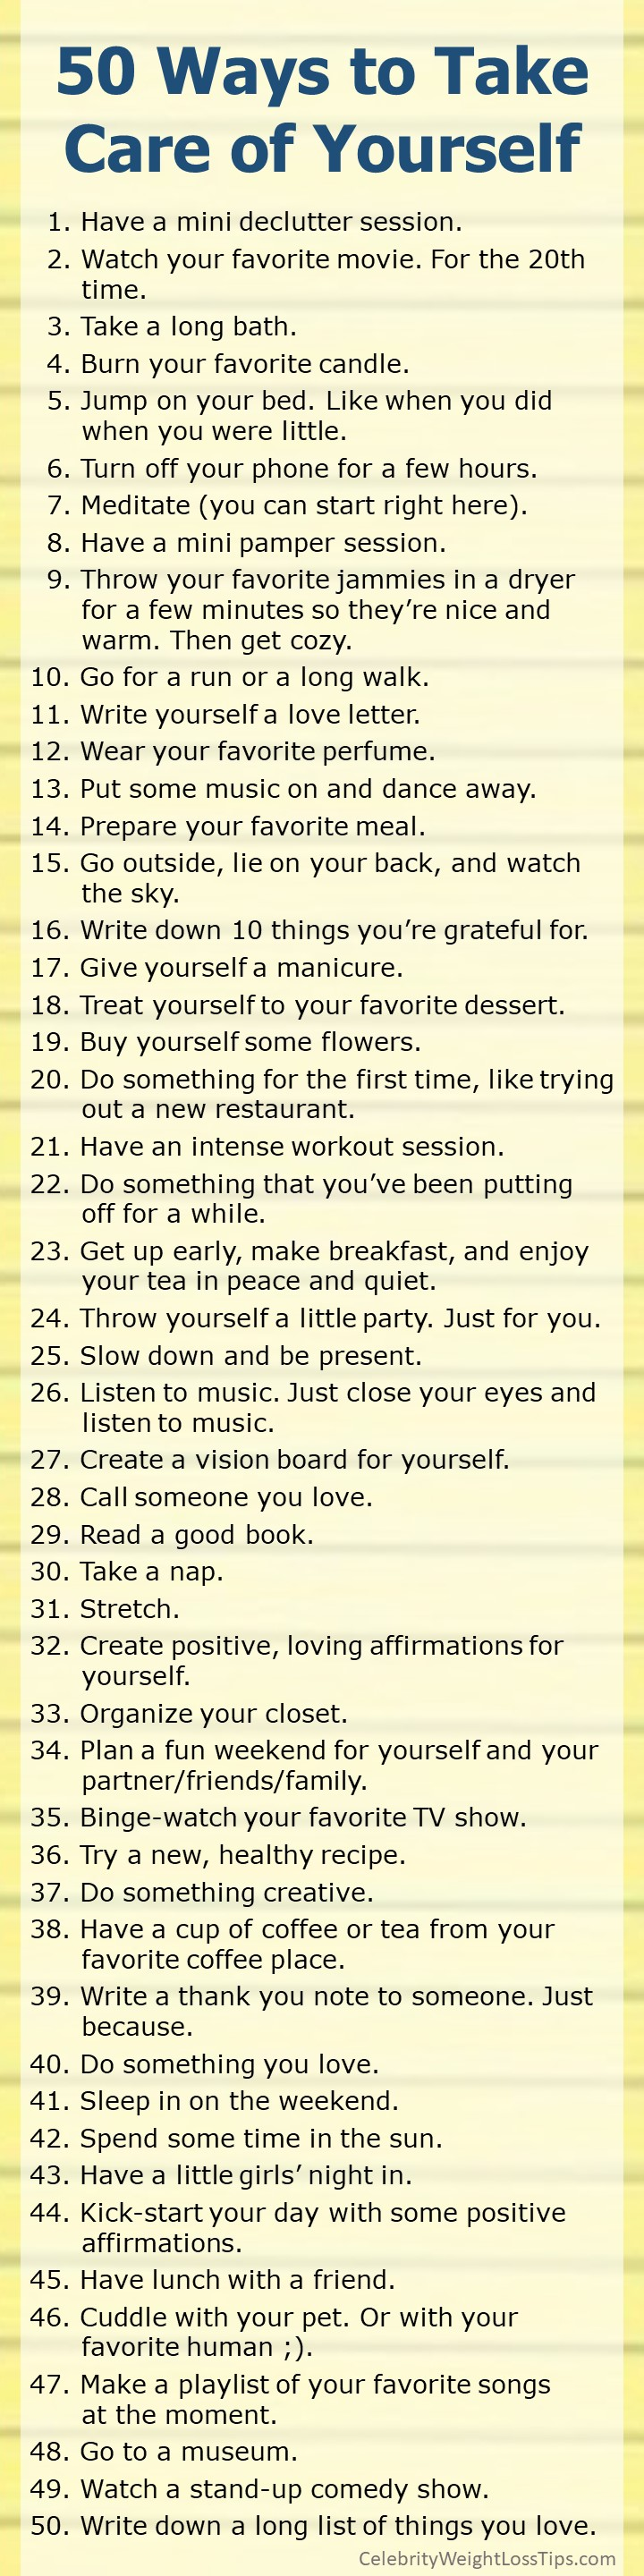 50 Ways to Take Care of Yourself: Here is a wonderful list of 50 ways to practice good self-care. Do something every day to pamper yourself, to be good to yourself, to take care of yourself.